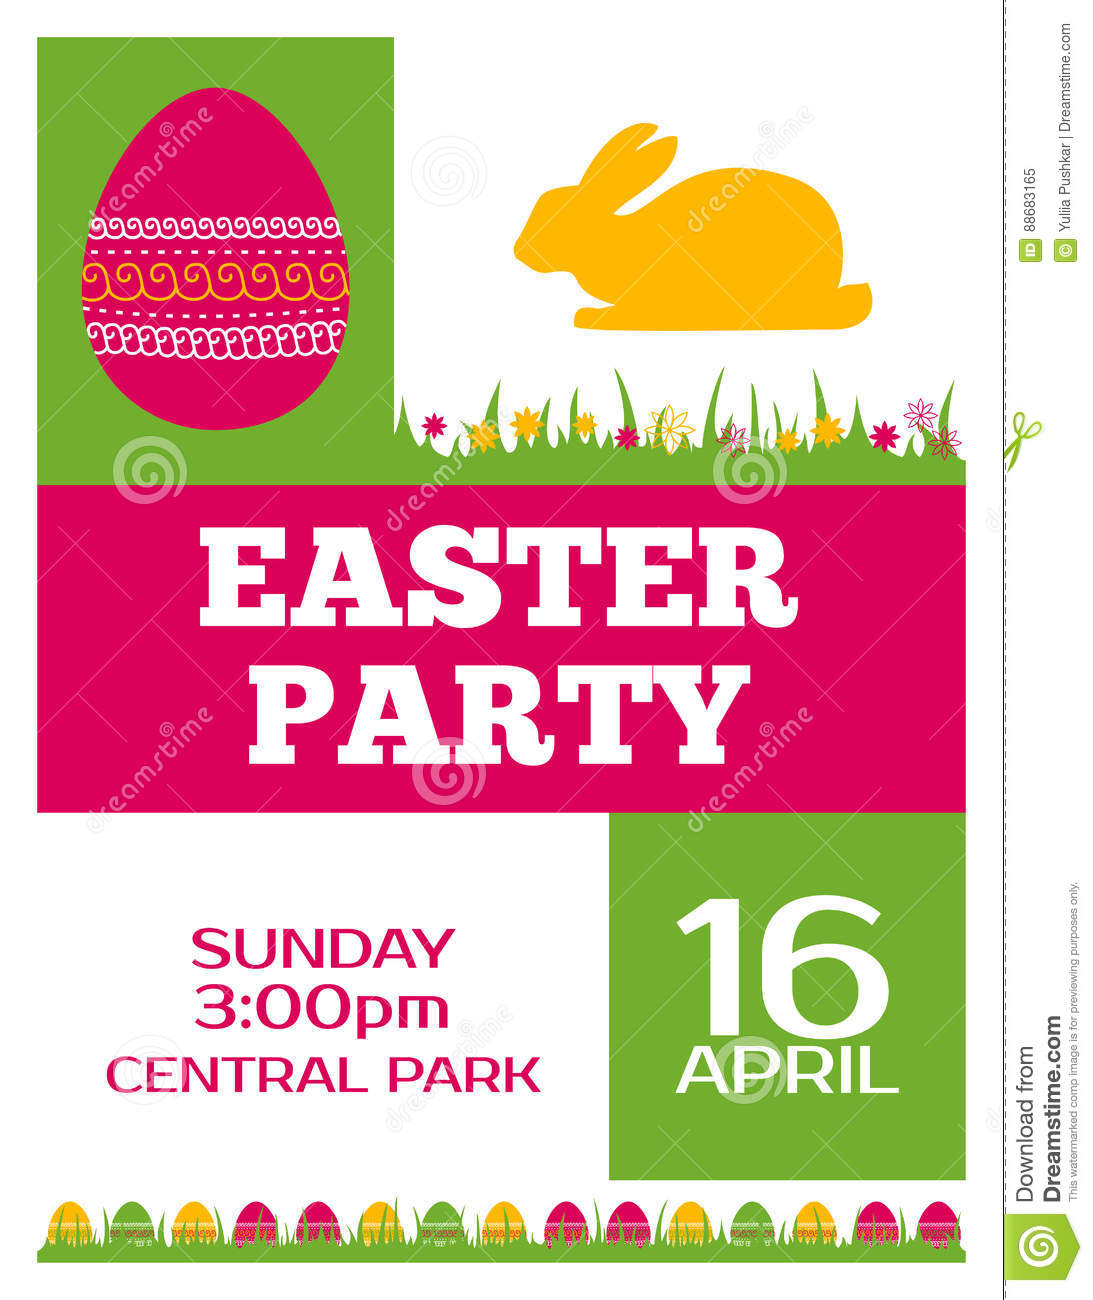 Easter Party Invitation Poster Flyer Design Stock Vector Image